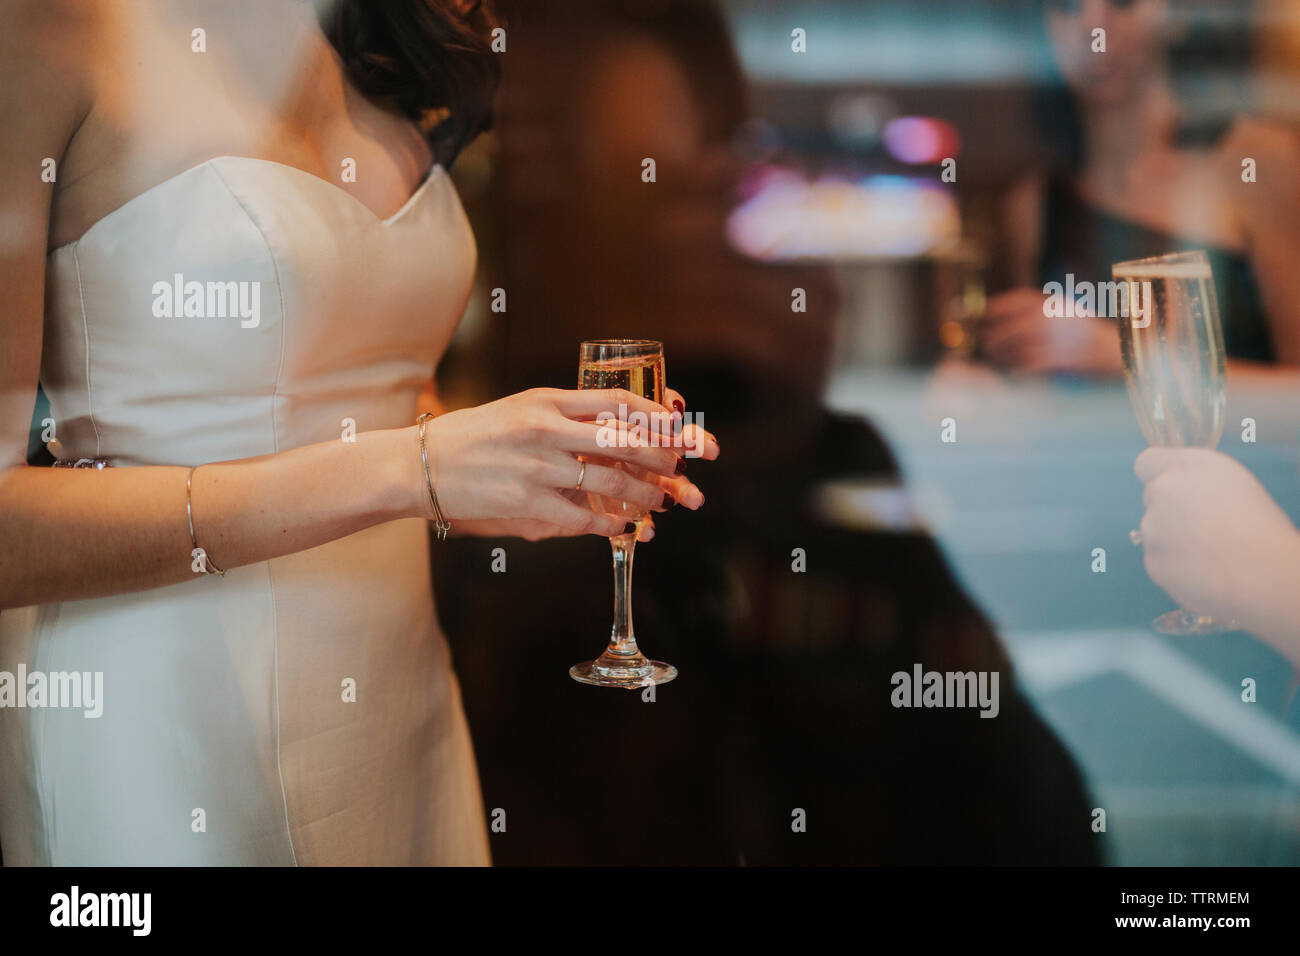 Midsection of bride holding drink seen through window - Stock Image